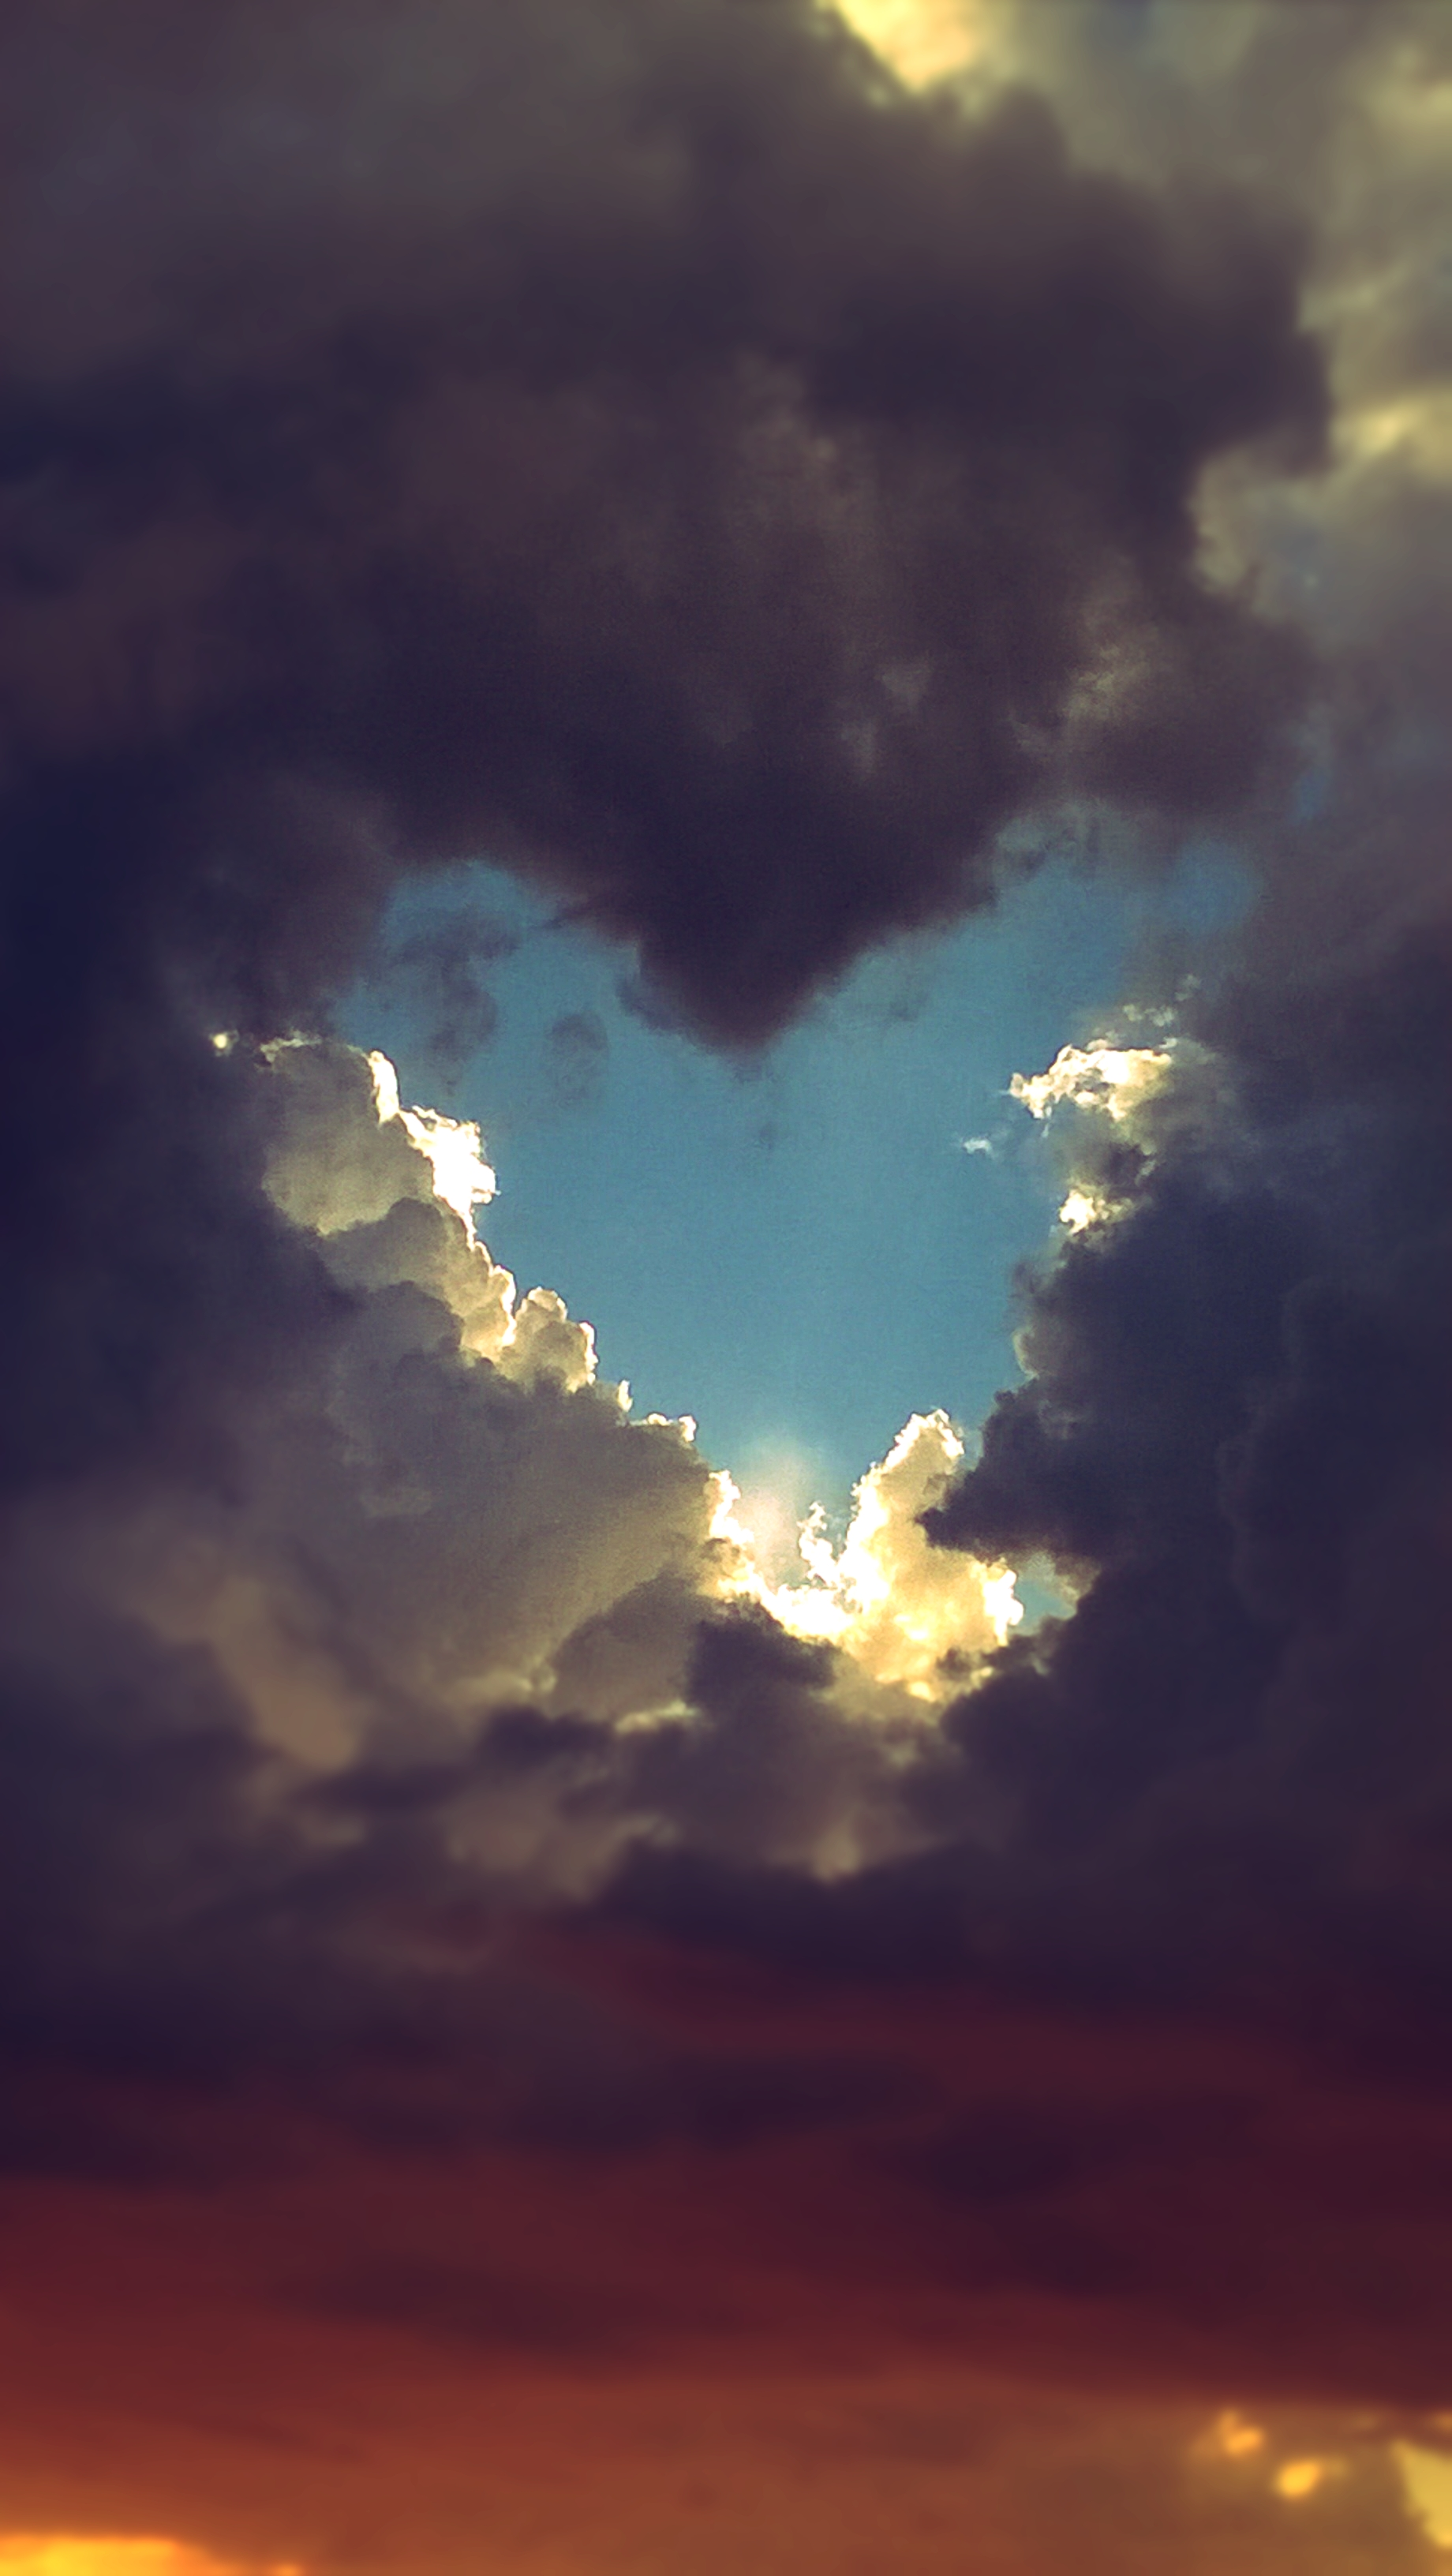 Heart Shaped Break in the Clouds, Blue, Romance, Stormy, Sky, HQ Photo